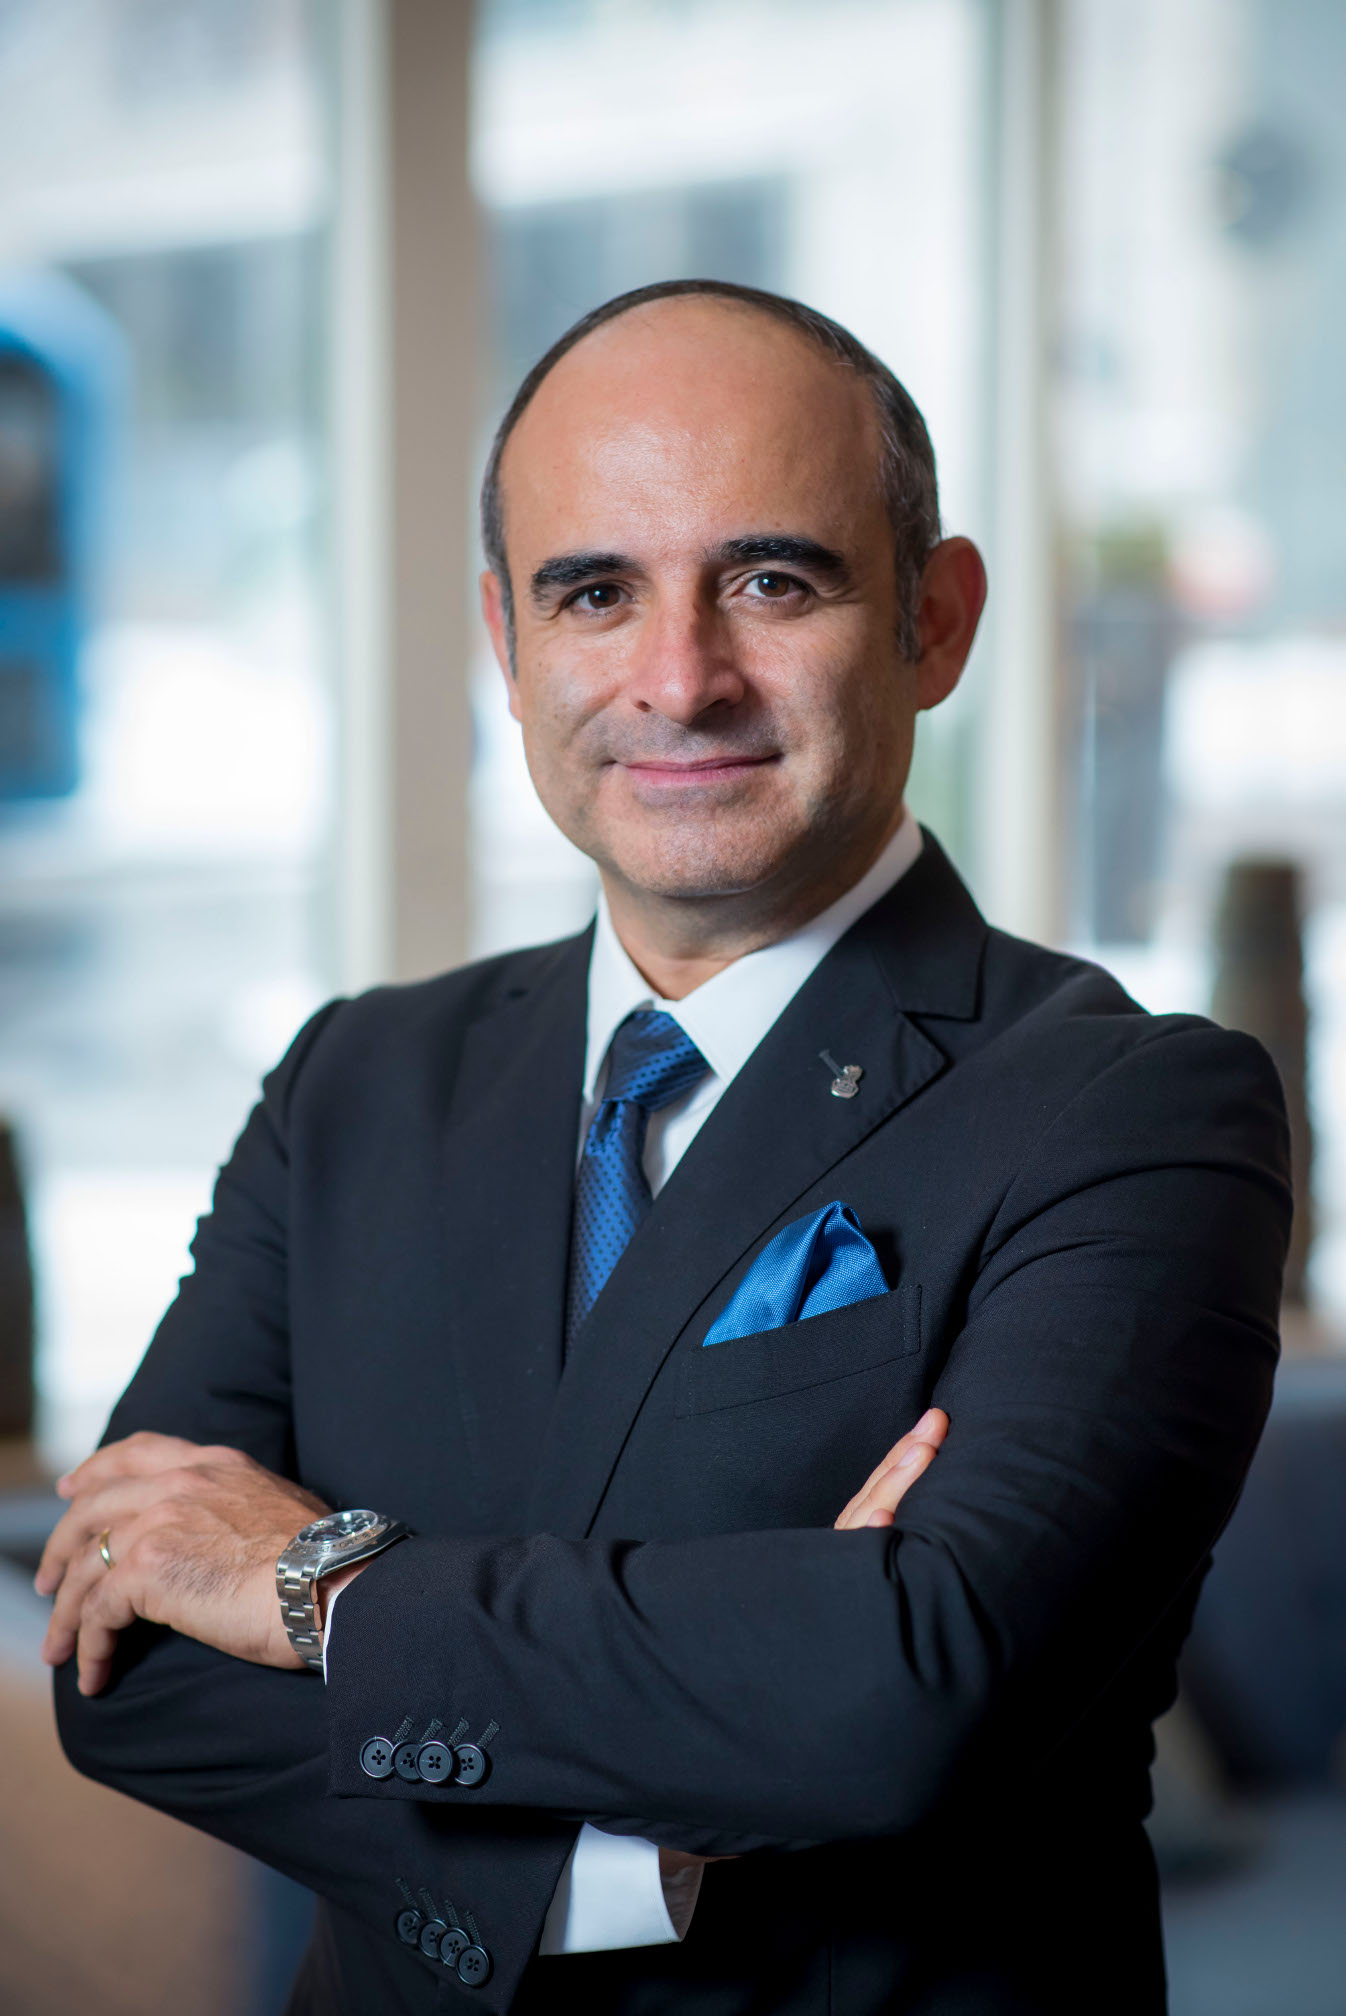 Xpat Interview: Hugo Lecanda, General Manager, The Ritz-Carlton, Budapest